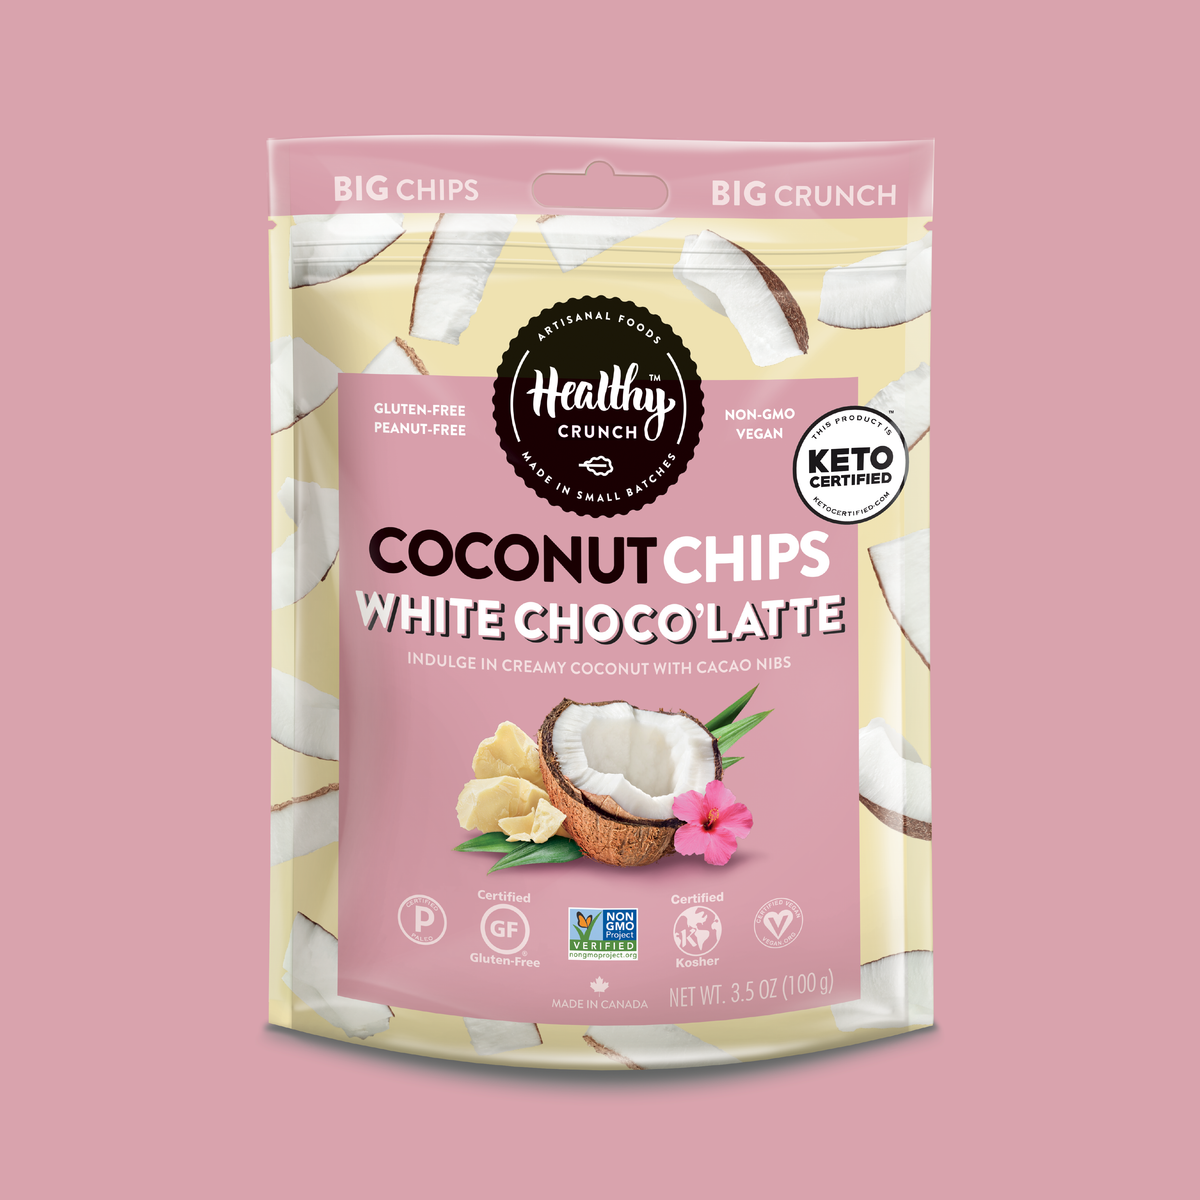 White Choco'Latte Coconut Chips